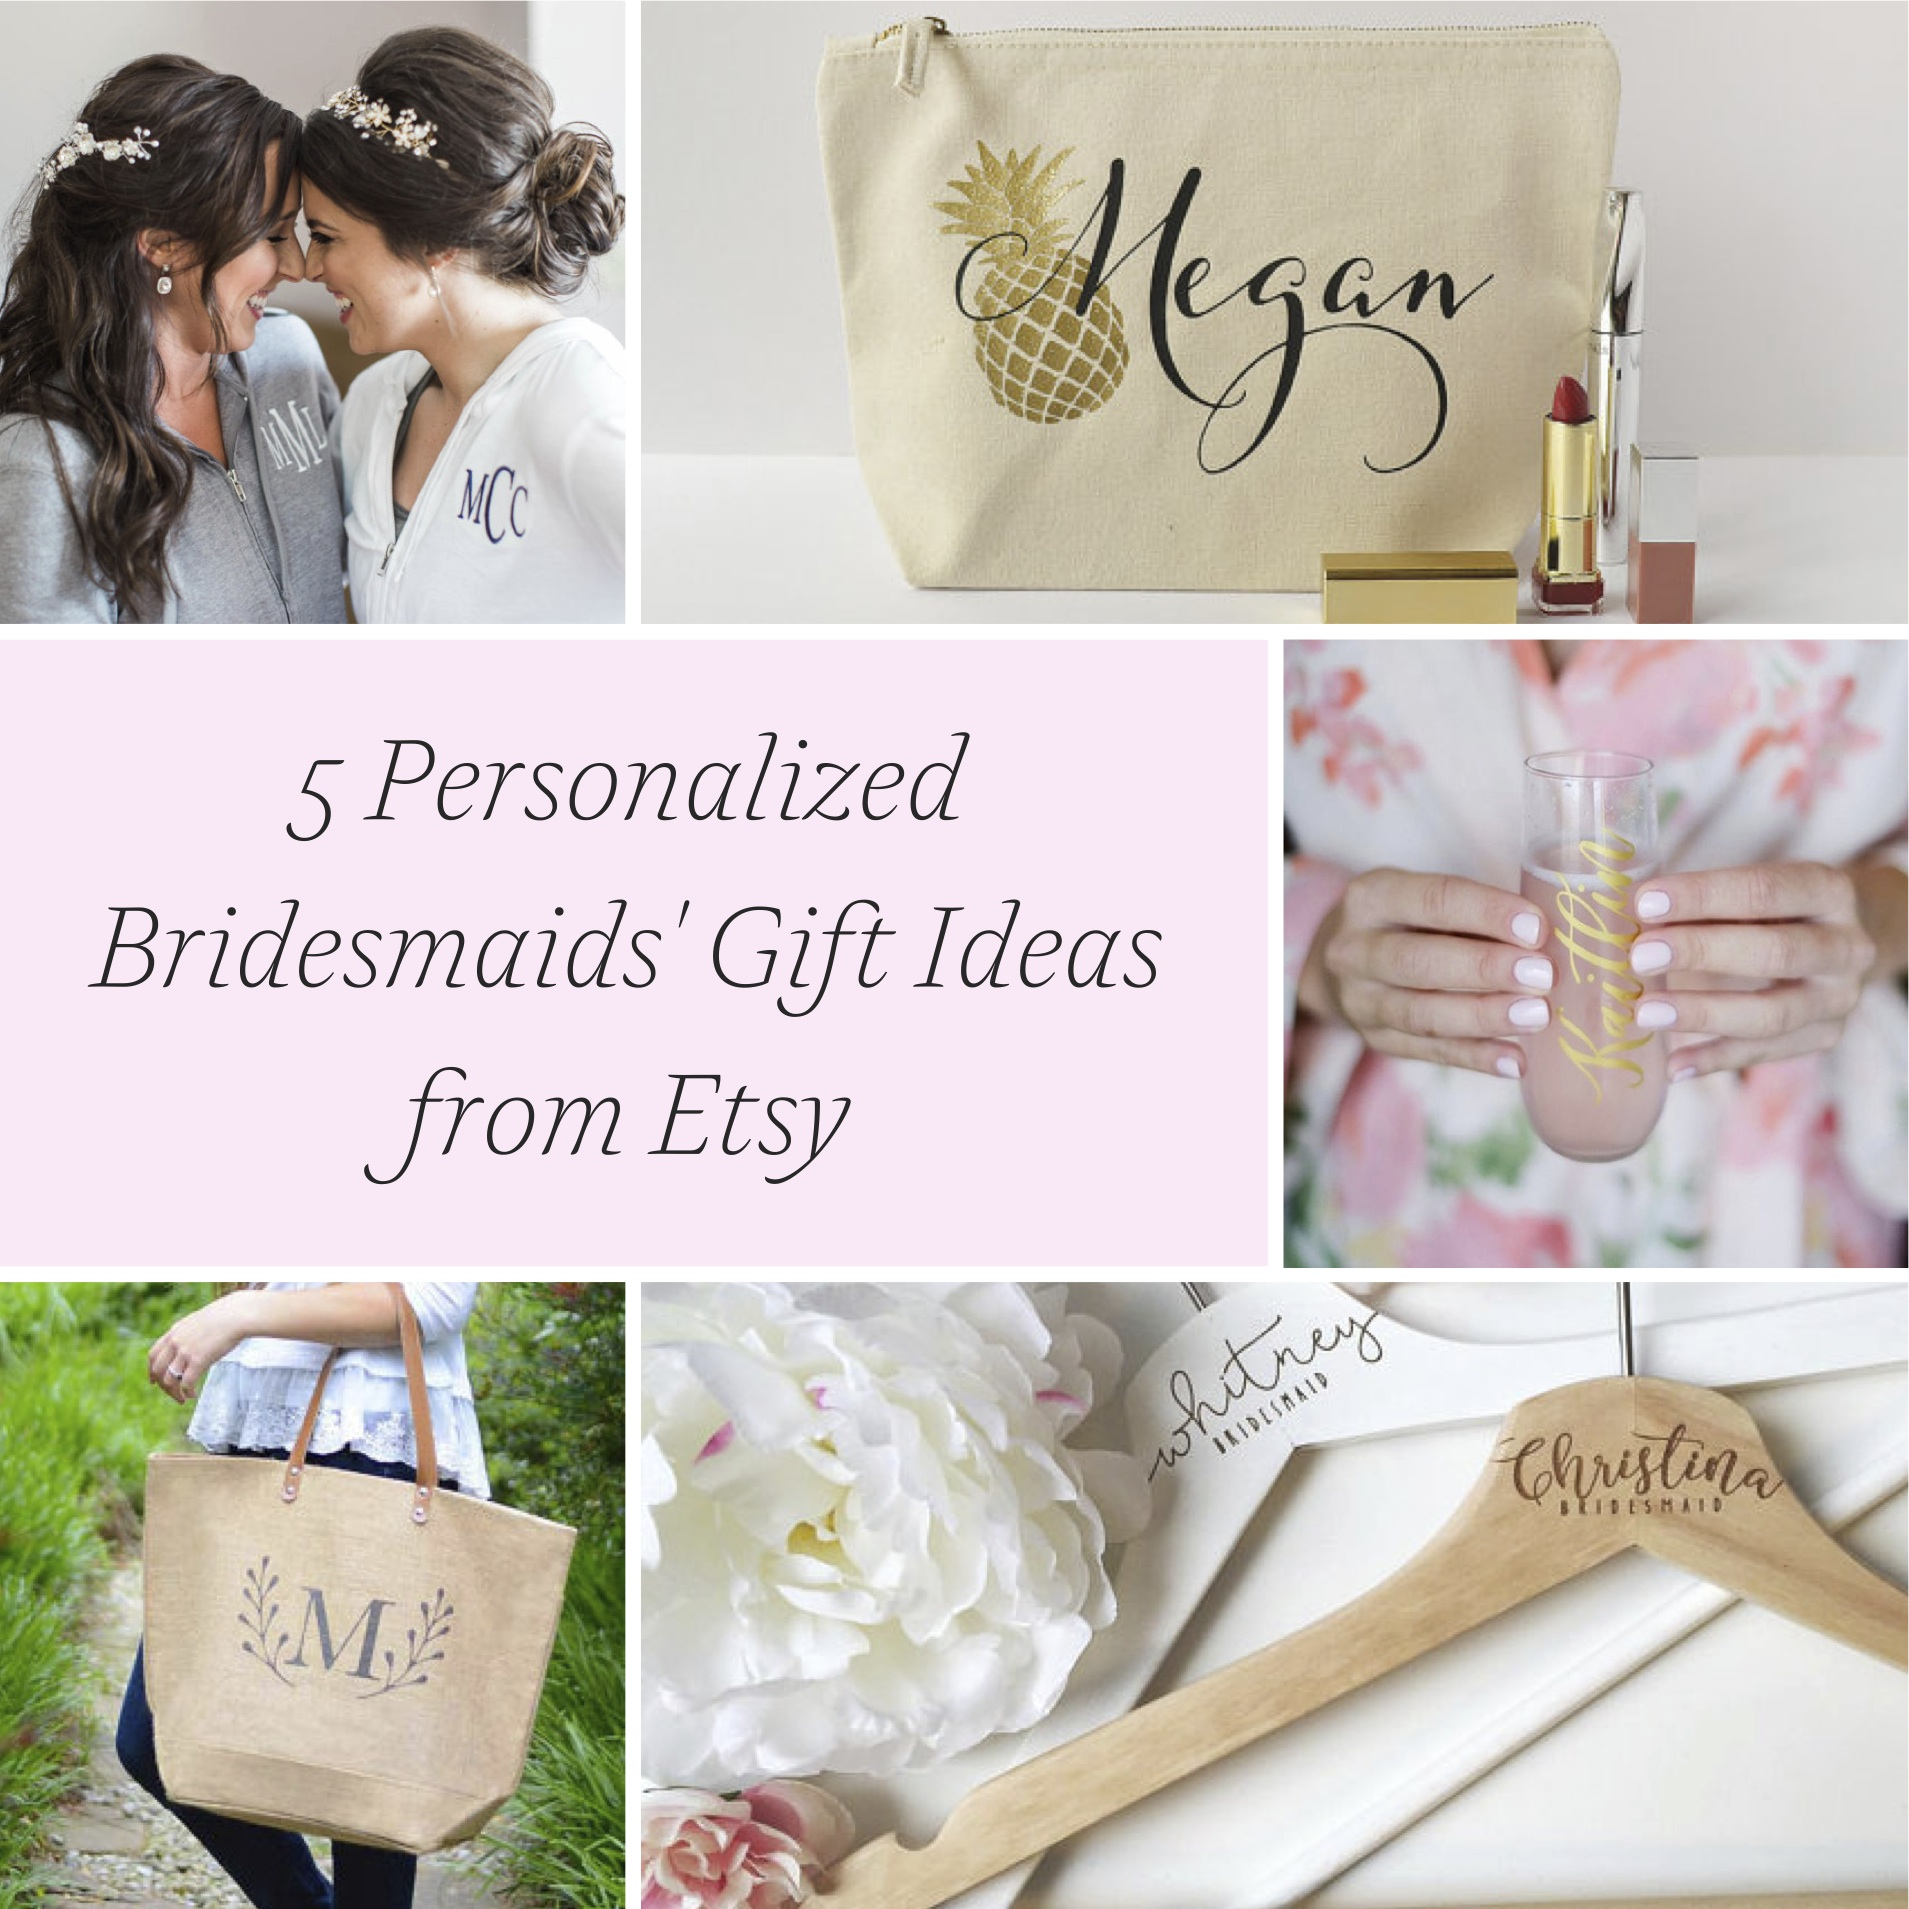 Wedding Gifts From Bridesmaid: 5 Personalized Bridesmaids' Gift Ideas » Hill City Bride